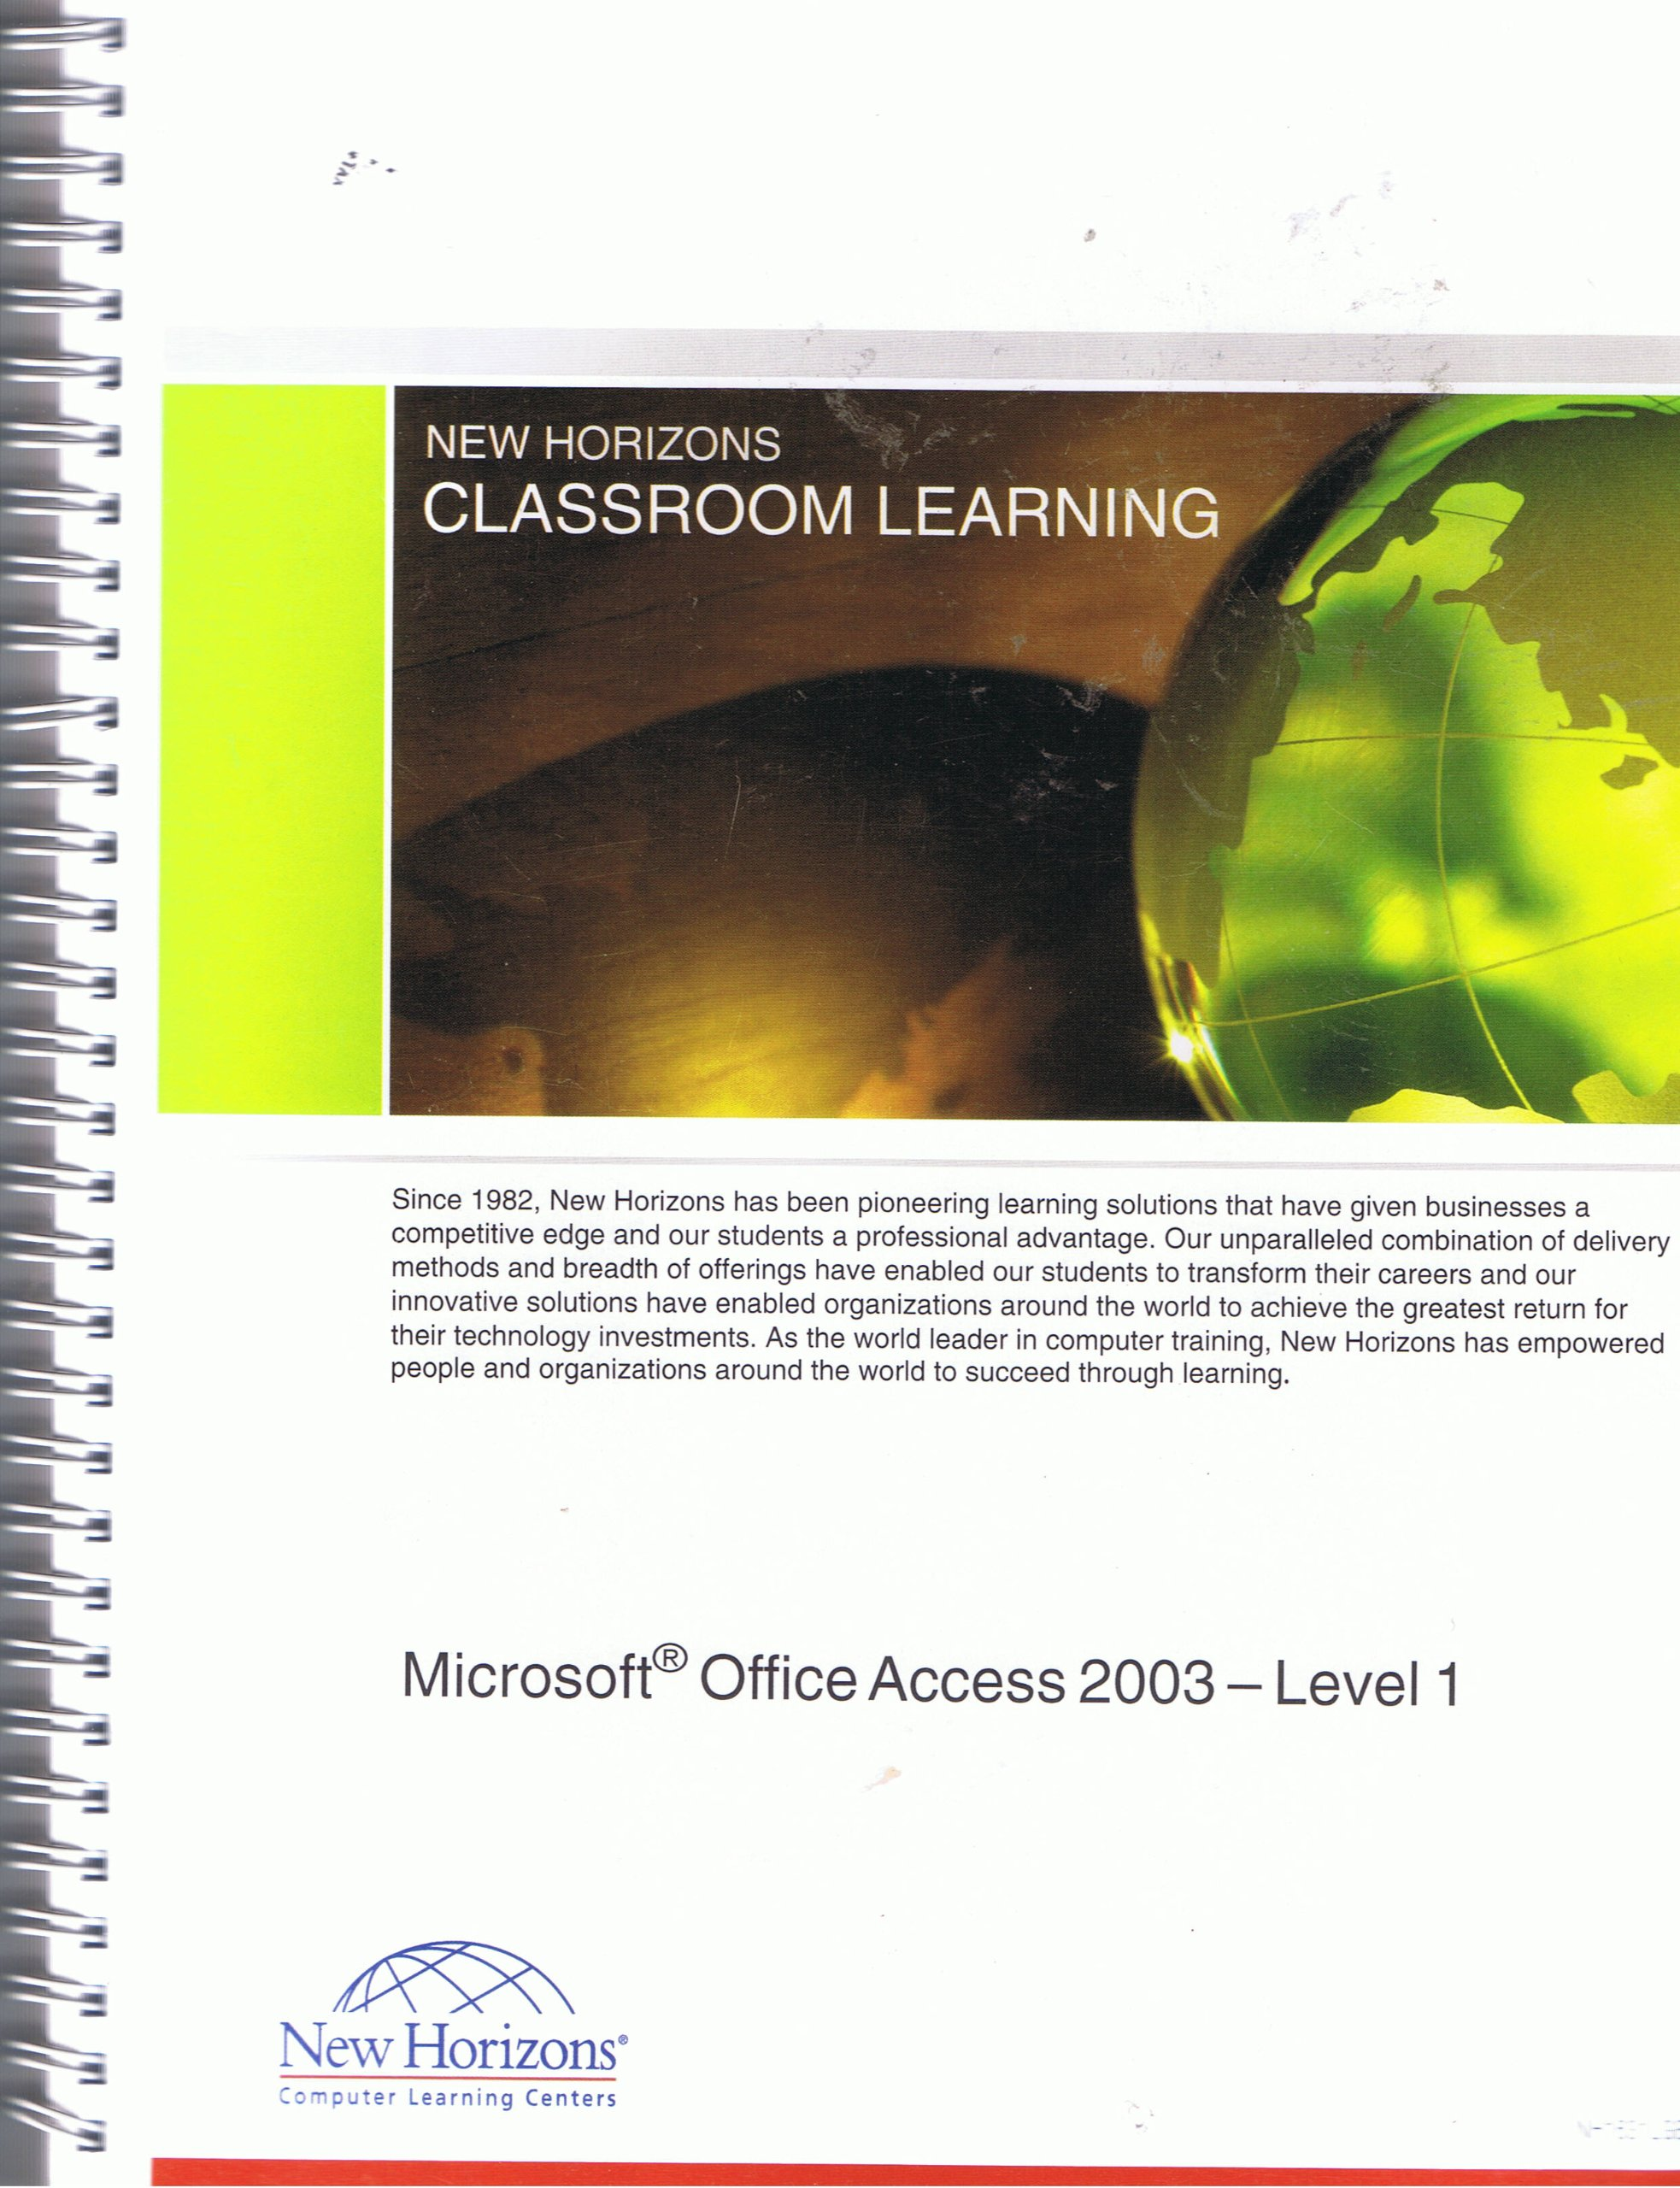 Microsoft Office Access 2003 - Levels 1 2 & 3 0758072367 0758072848 0758069383 New Horizons Classroom Learning PDF